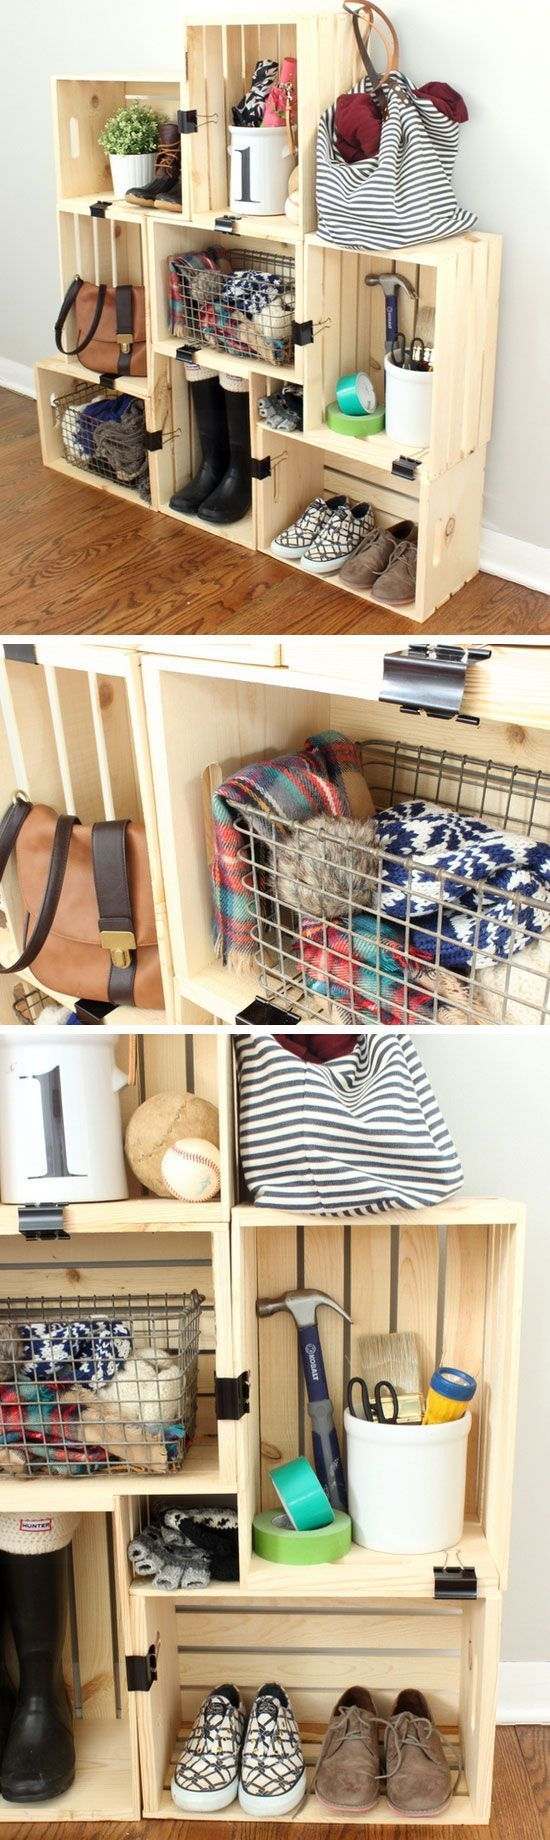 20 best ideas about apartment hacks on pinterest moving